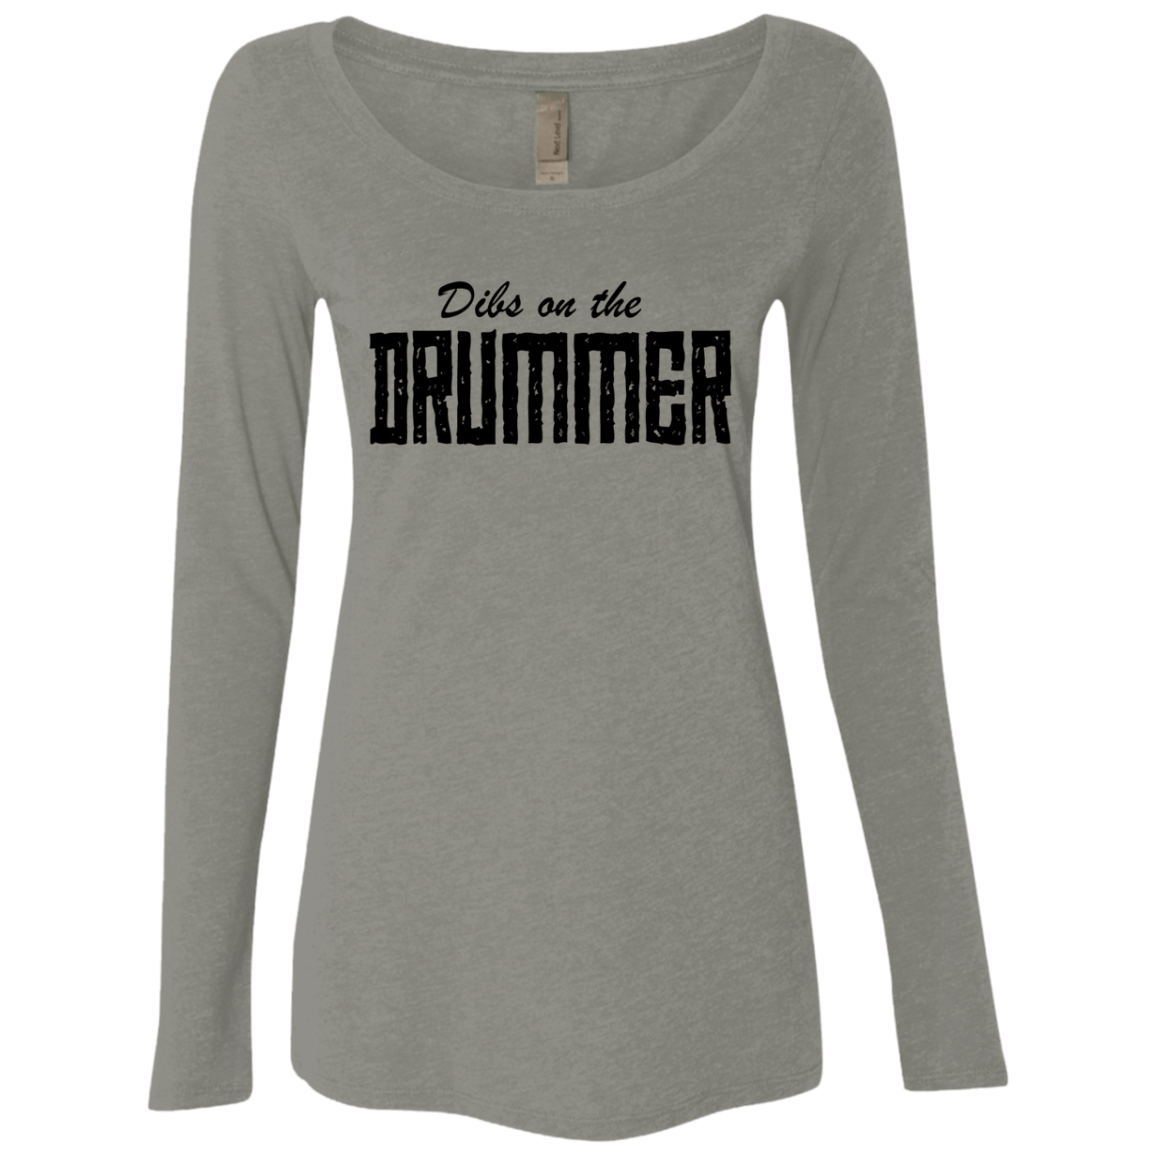 Dibs On The Drummer Women's Long Sleeve Tee